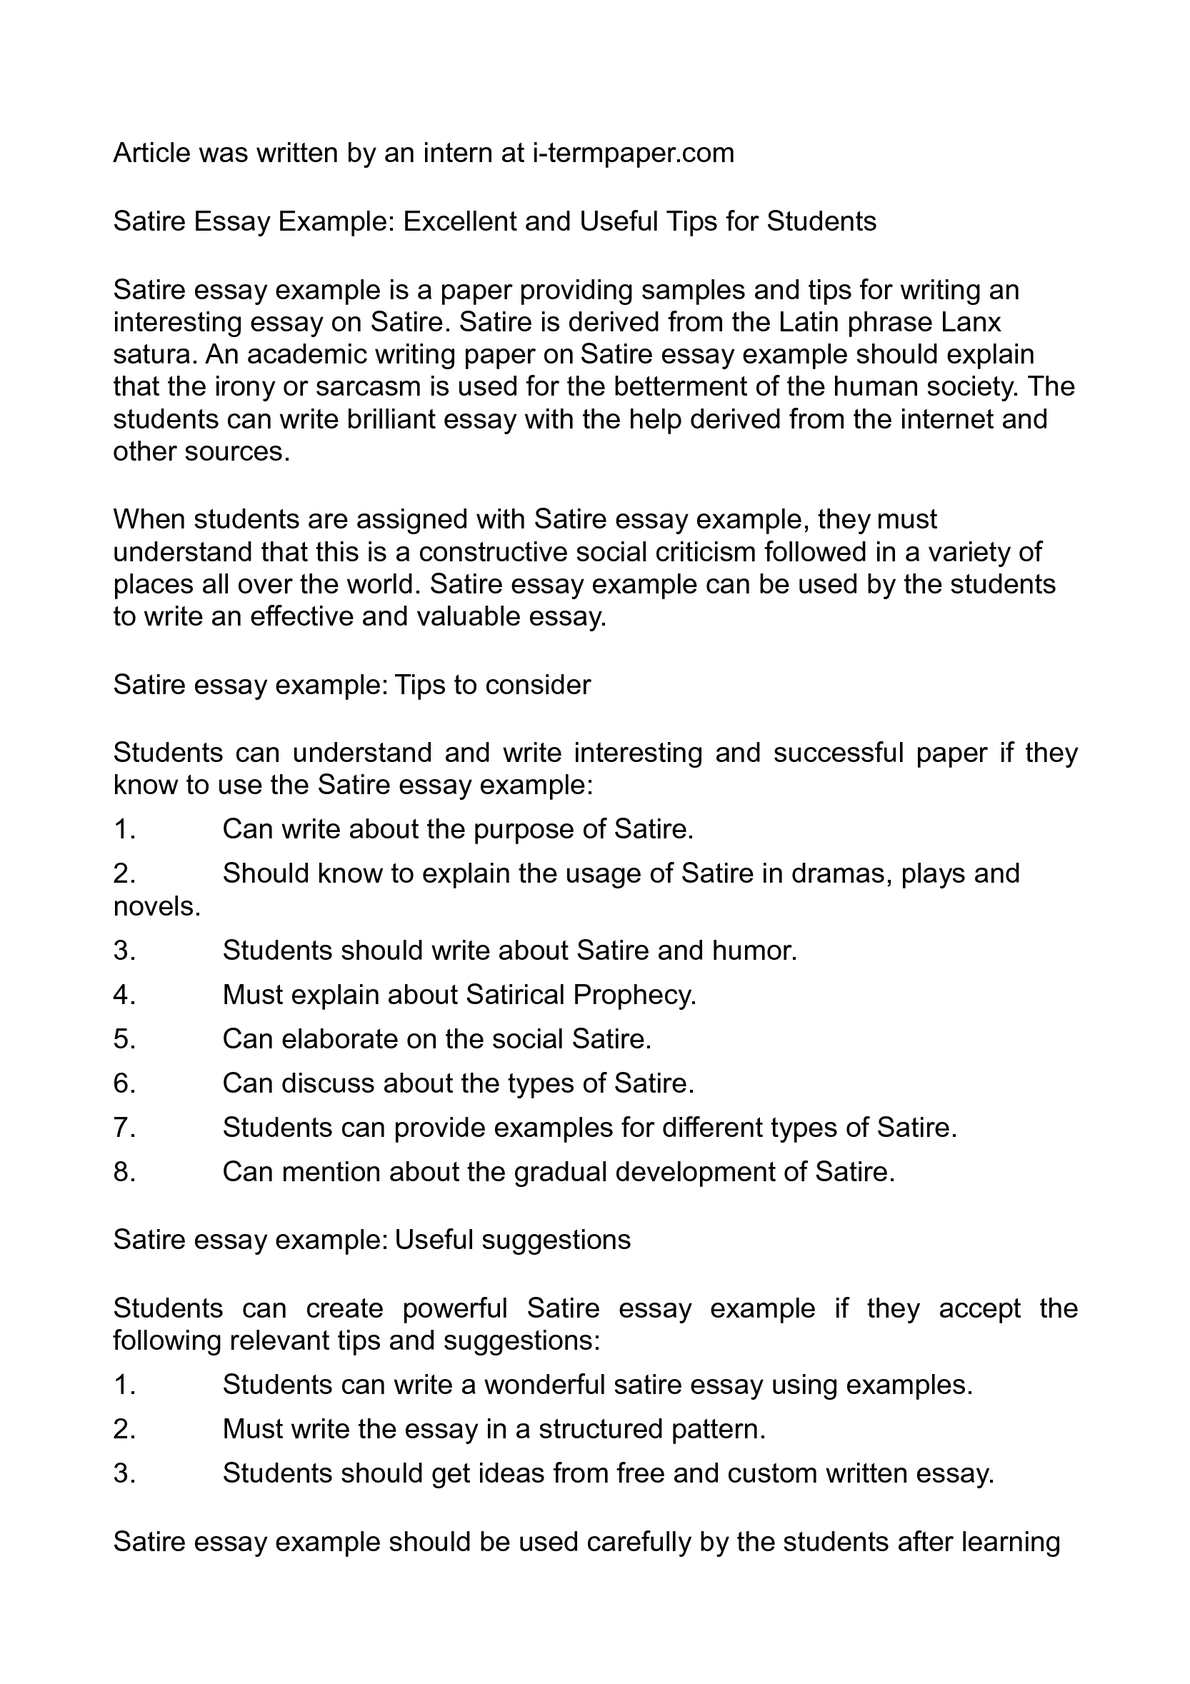 thanksgiving essay topics thanksgiving essay sample thanksgiving  satire essay topics satirical essay topics gxart example of satirical essay topics gxart orgexamples of satire images about thanksgiving thanksgiving